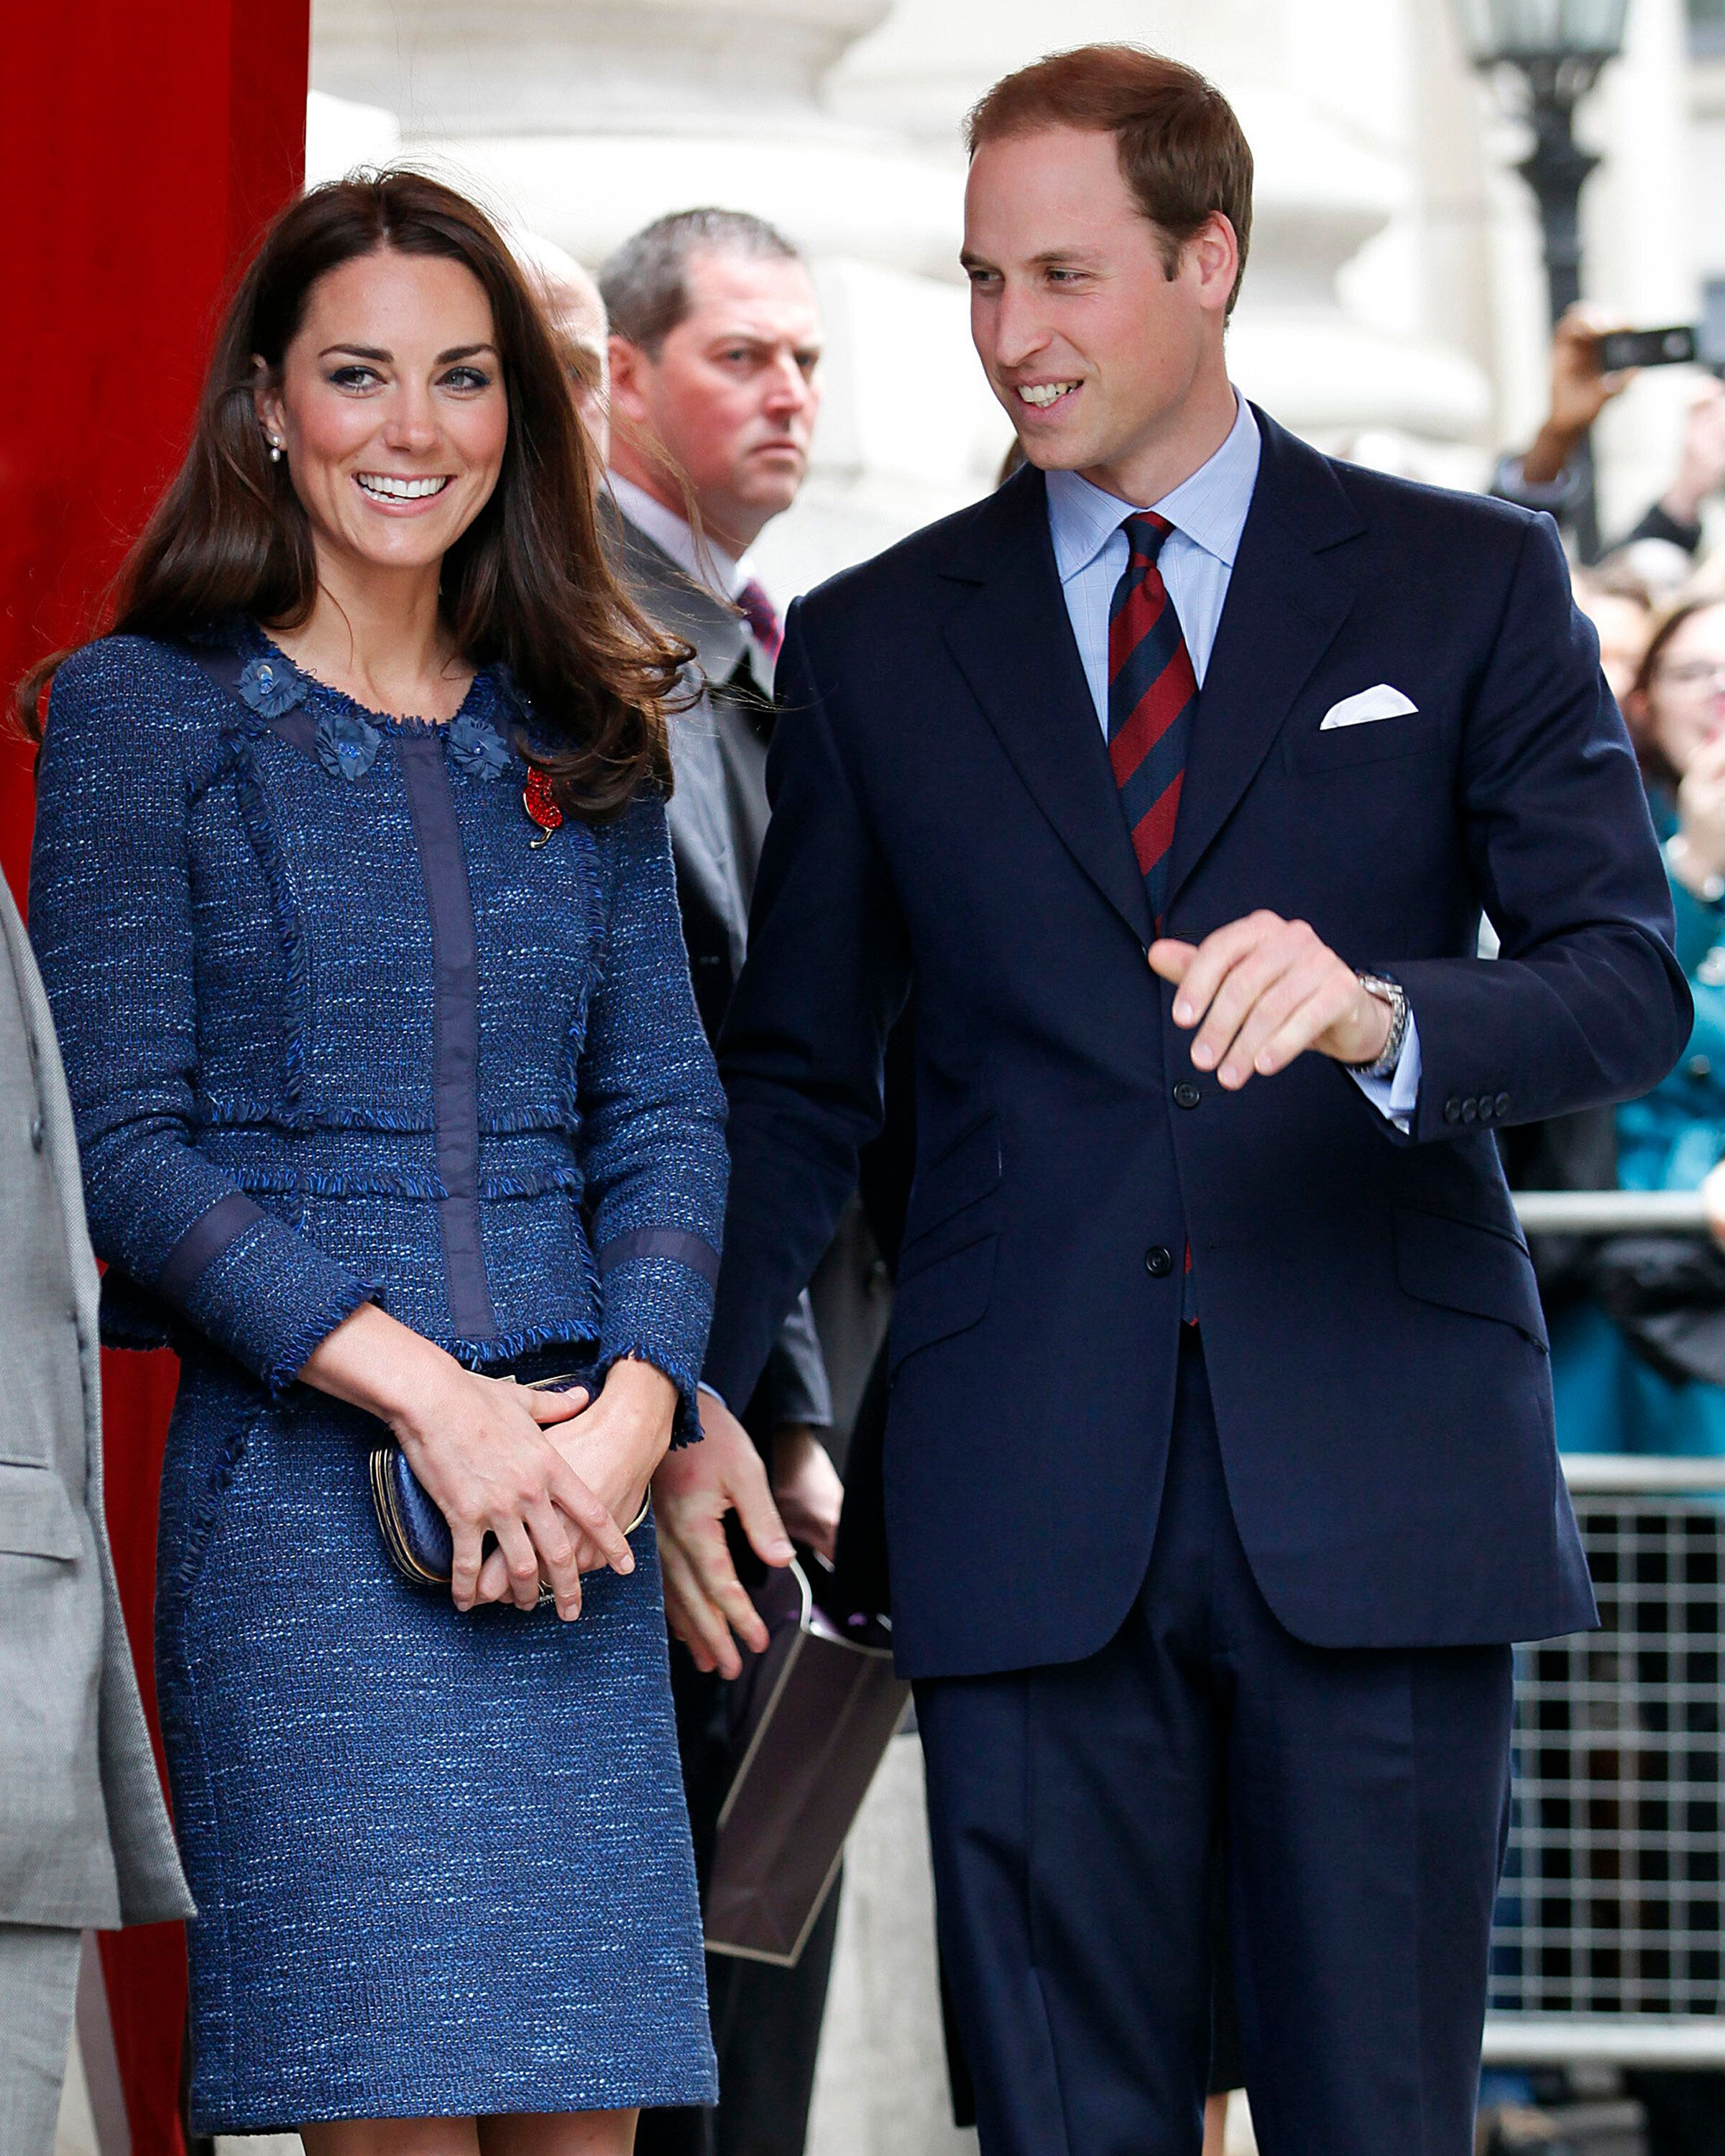 The Duke and Duchess of Cambridge leave after attending a Reception For The Scott-Amundsen Centenary Race at Goldsmiths' Hall